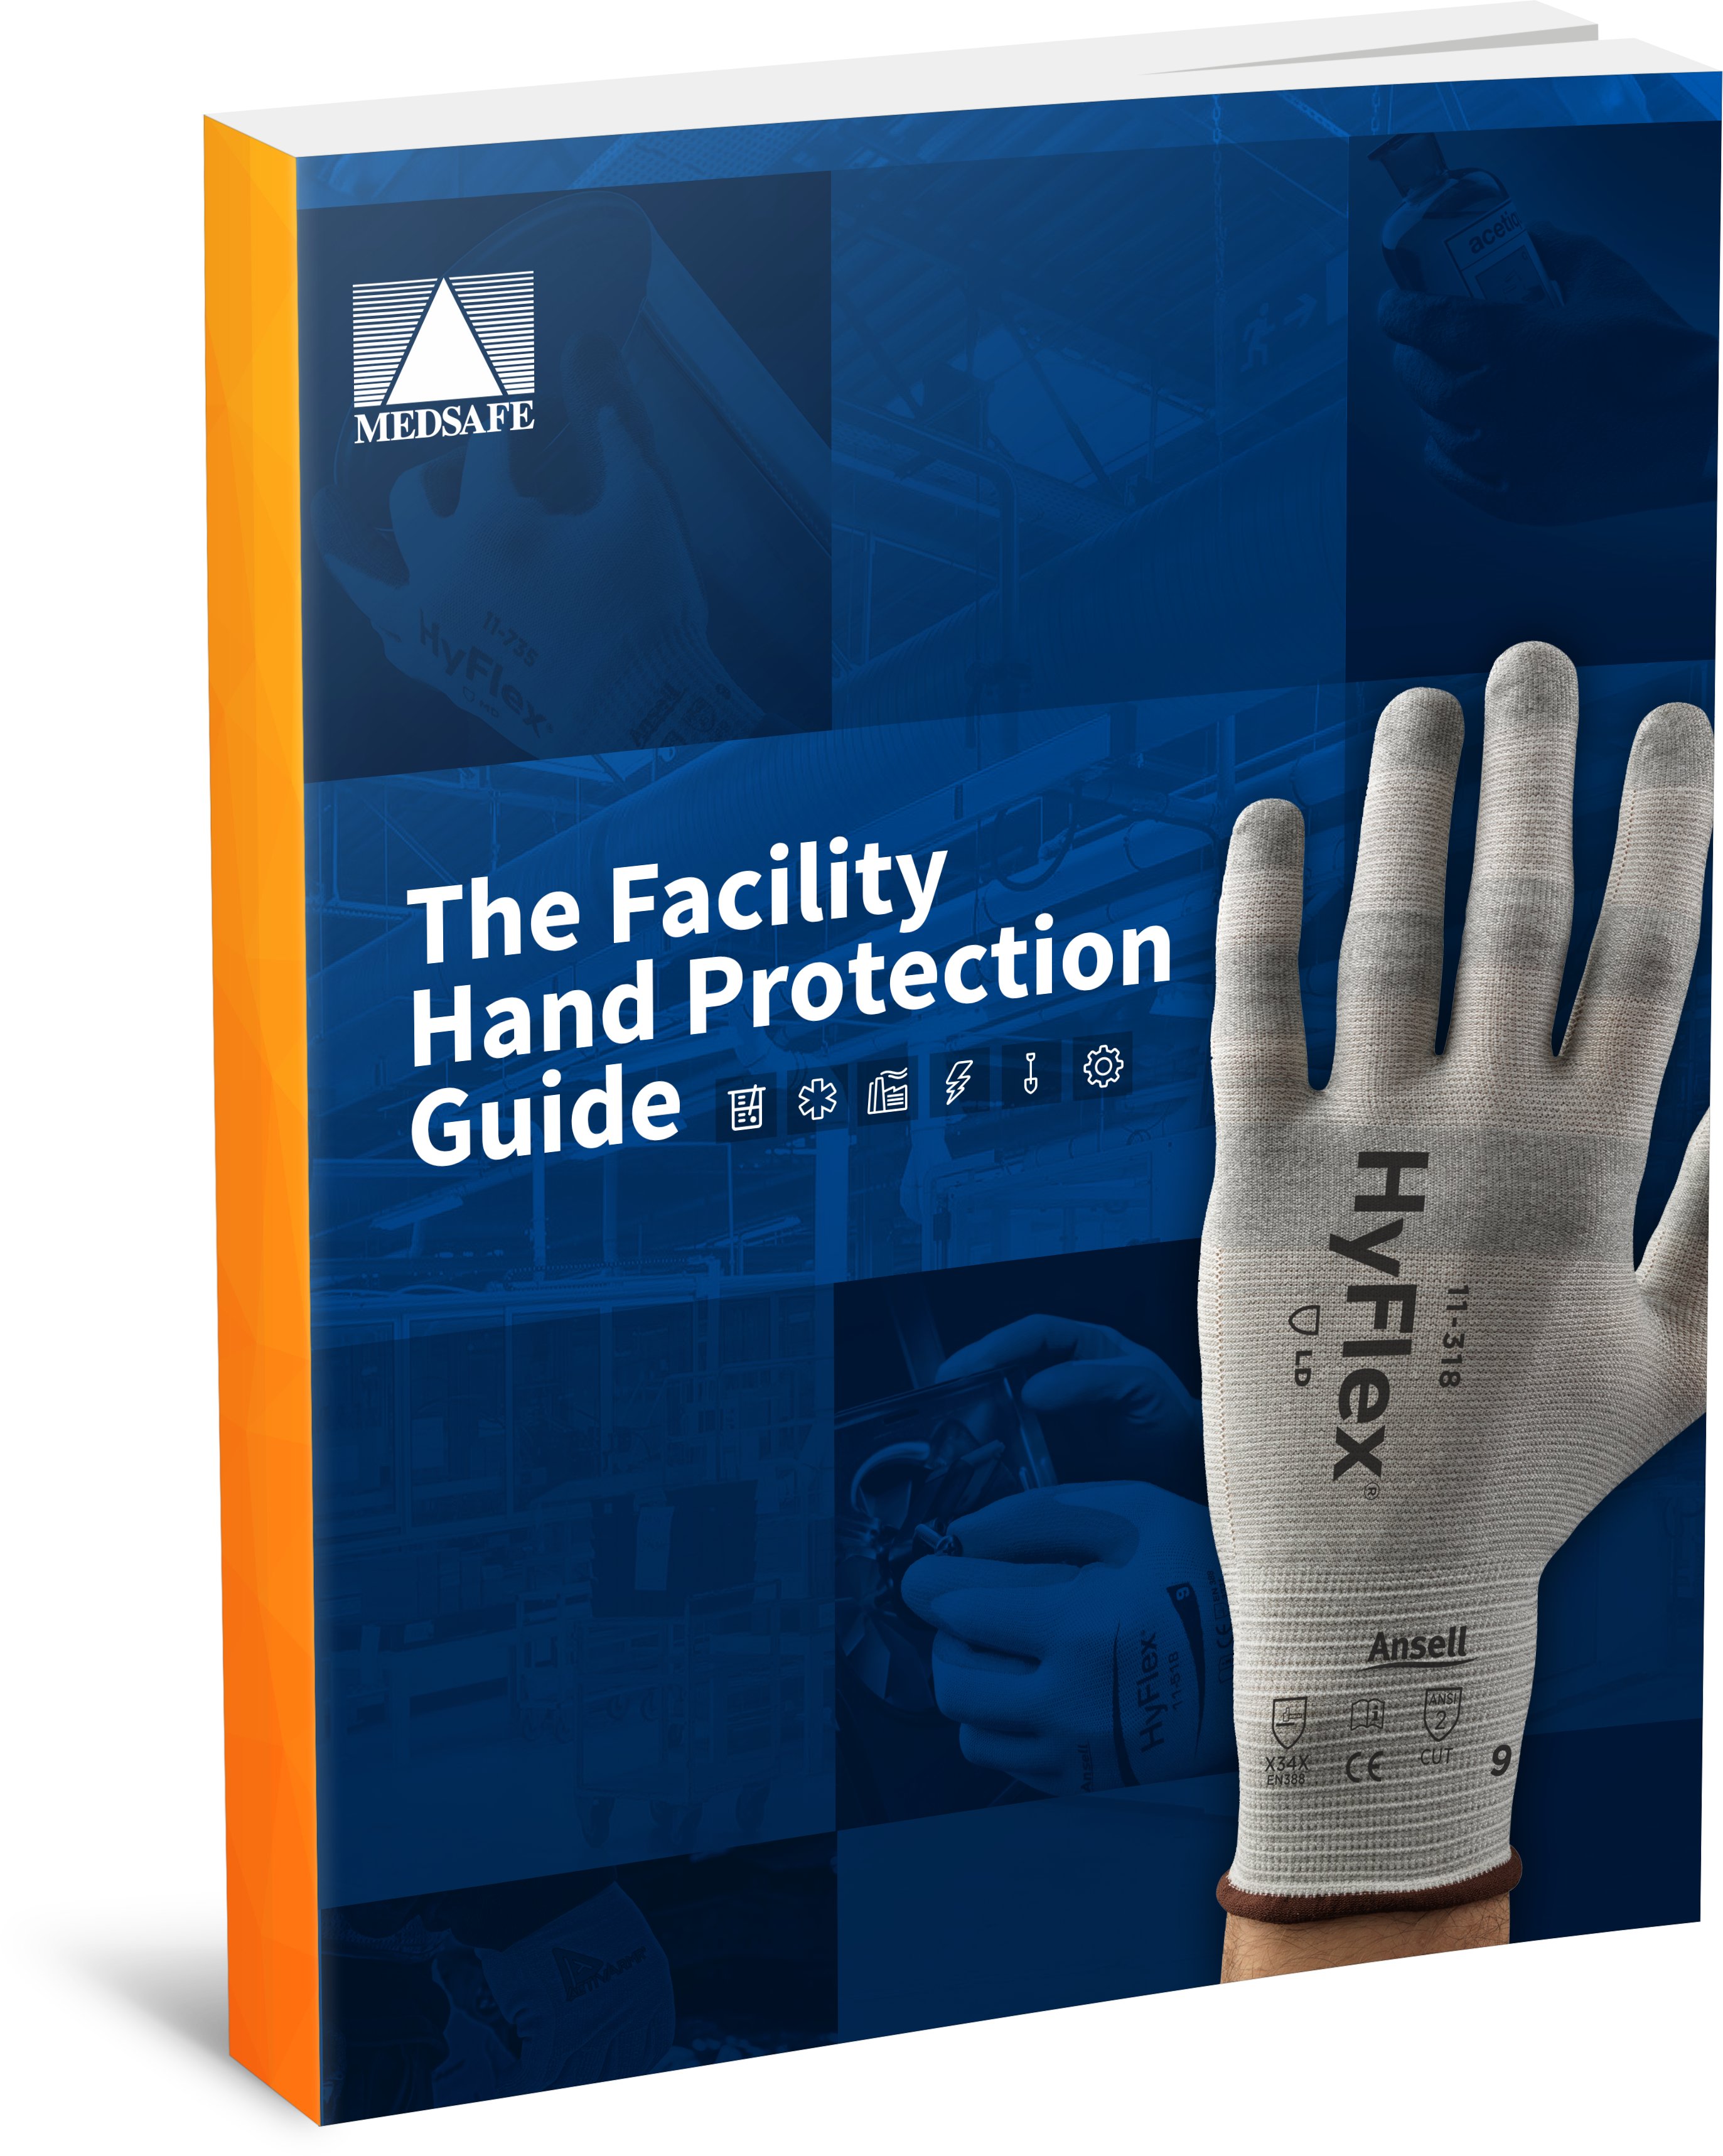 Campaign_1_Facility_Hand_Protection_Guide_Ebook_Cover_RENDER_2-1.png